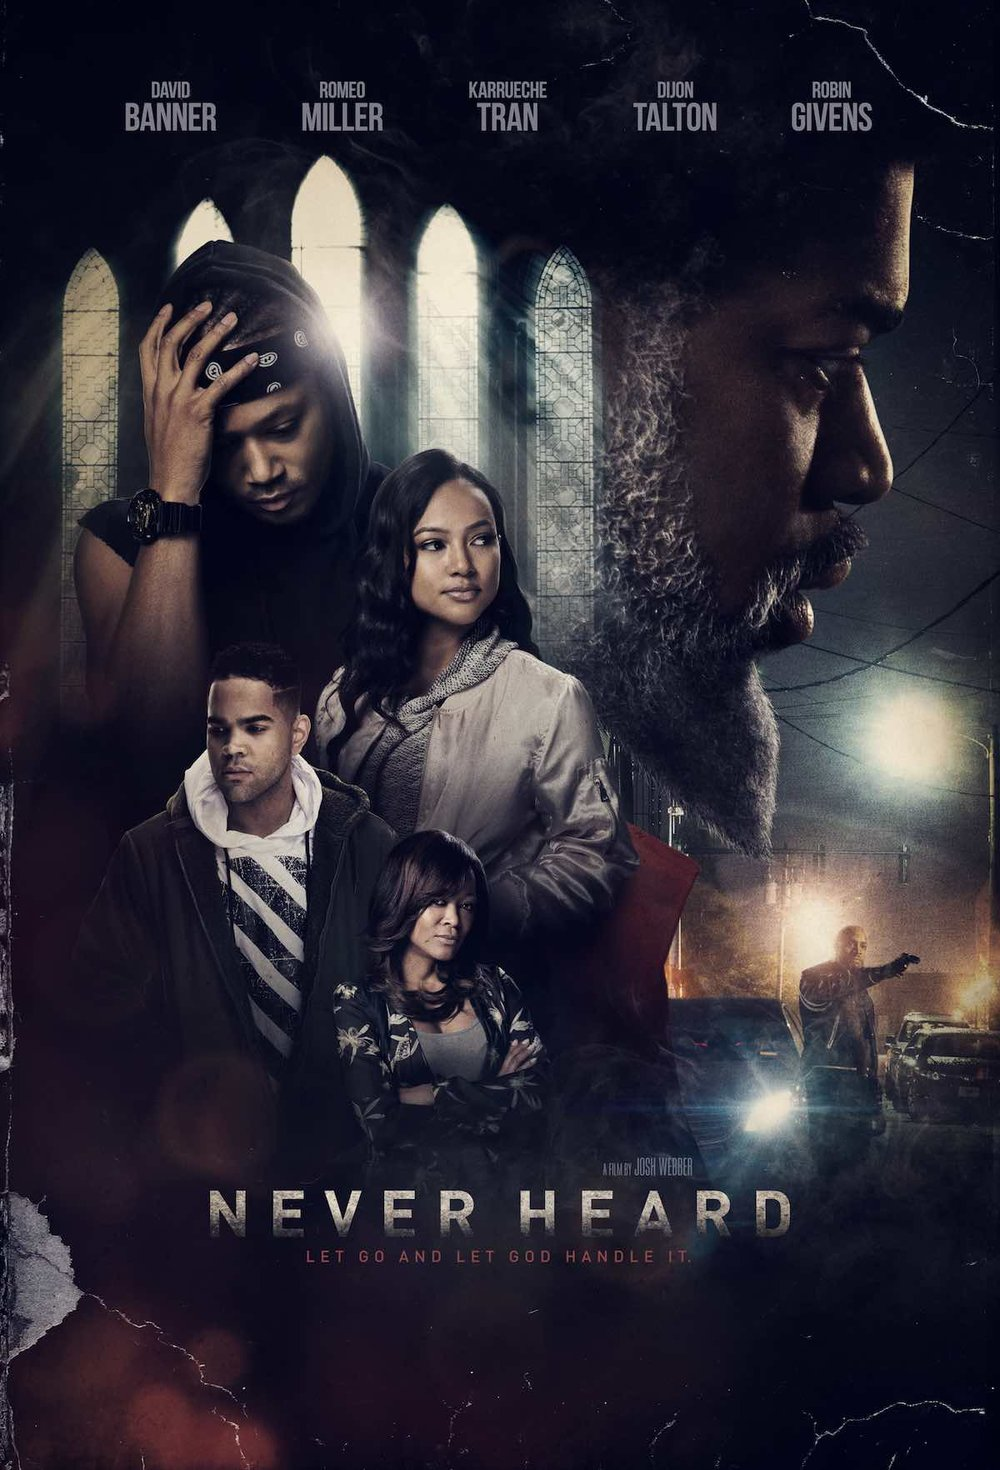 Film Review:: Never Heard -Let Go & Let God Handle It | Starring David Banner, Romeo Miller, Robin Givens, Kandi Burruss and more!